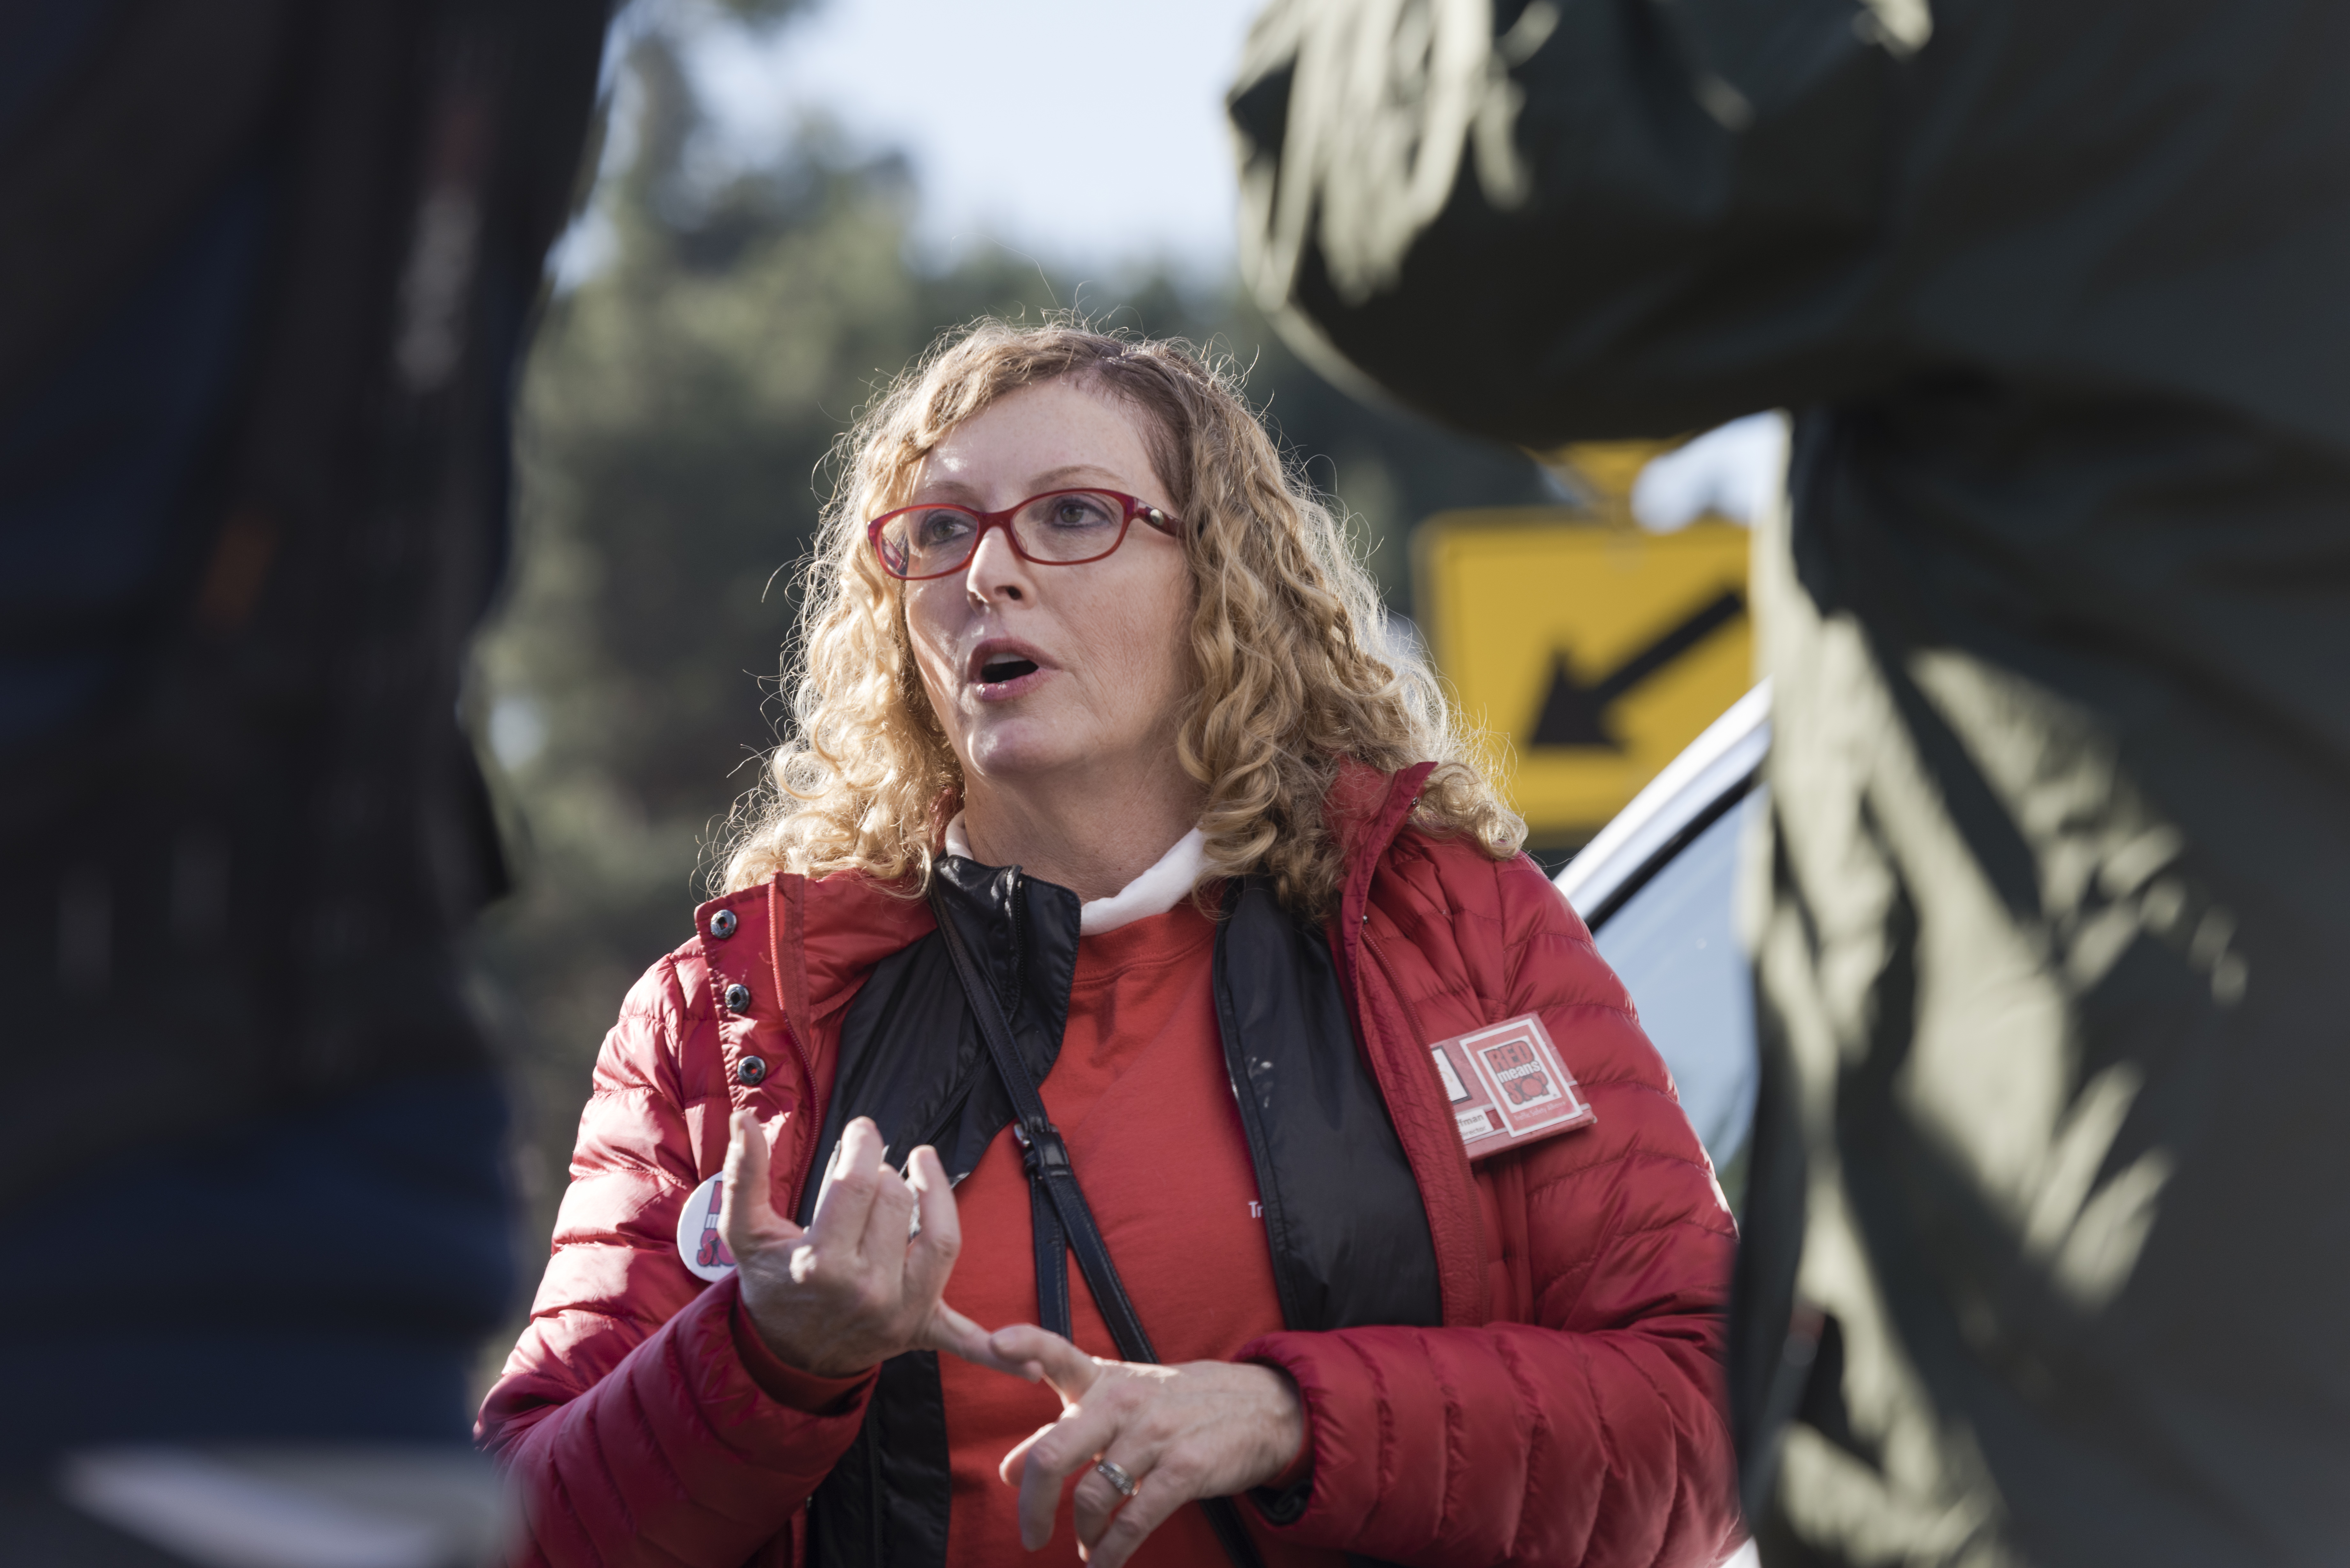 Barb Hoffman of Red Means Stop Traffic Safety Alliance